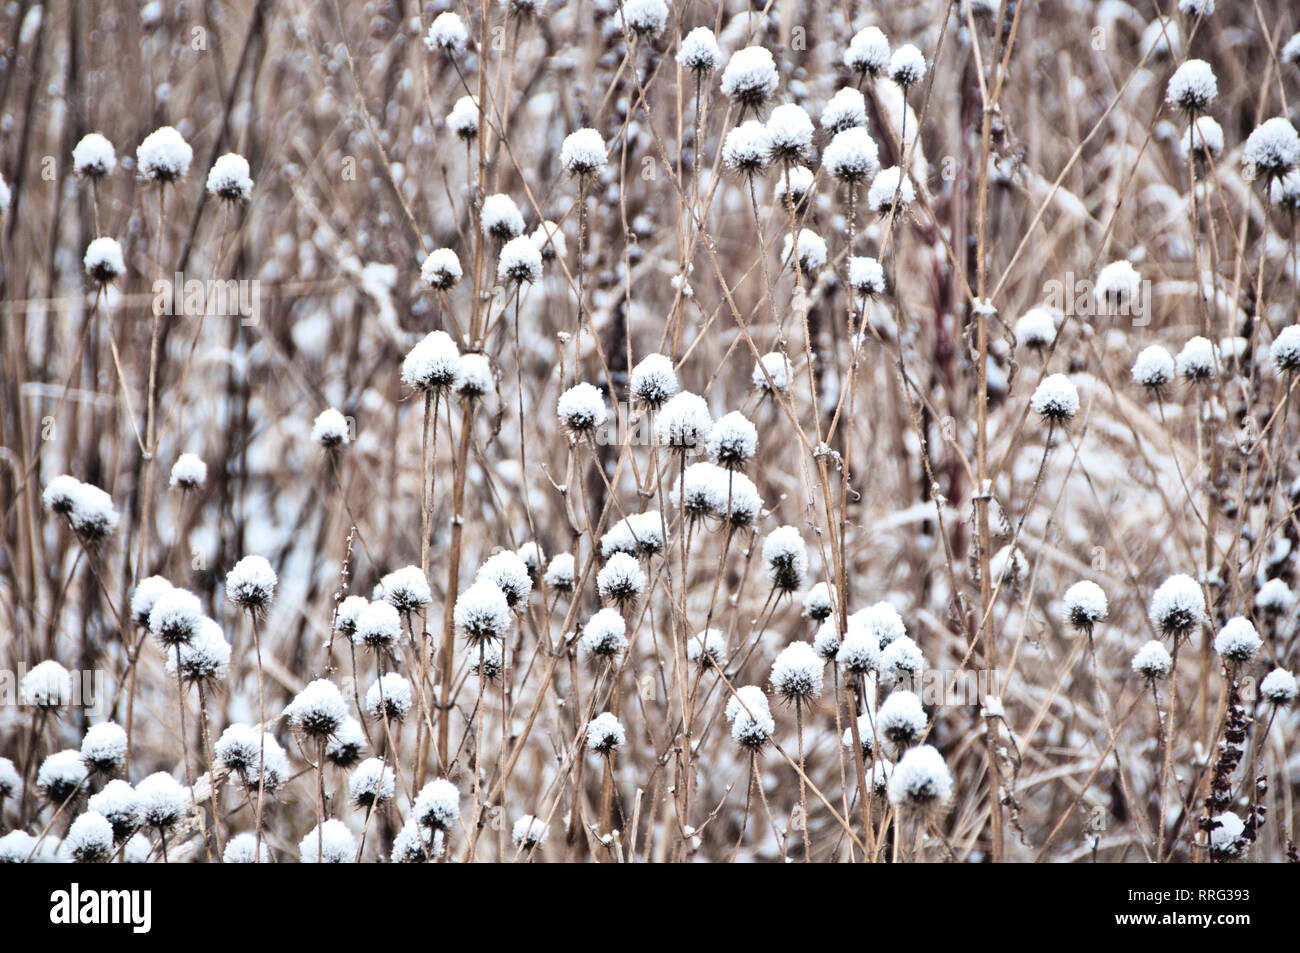 dry common Thistle plants in winter covered with snow - Stock Image